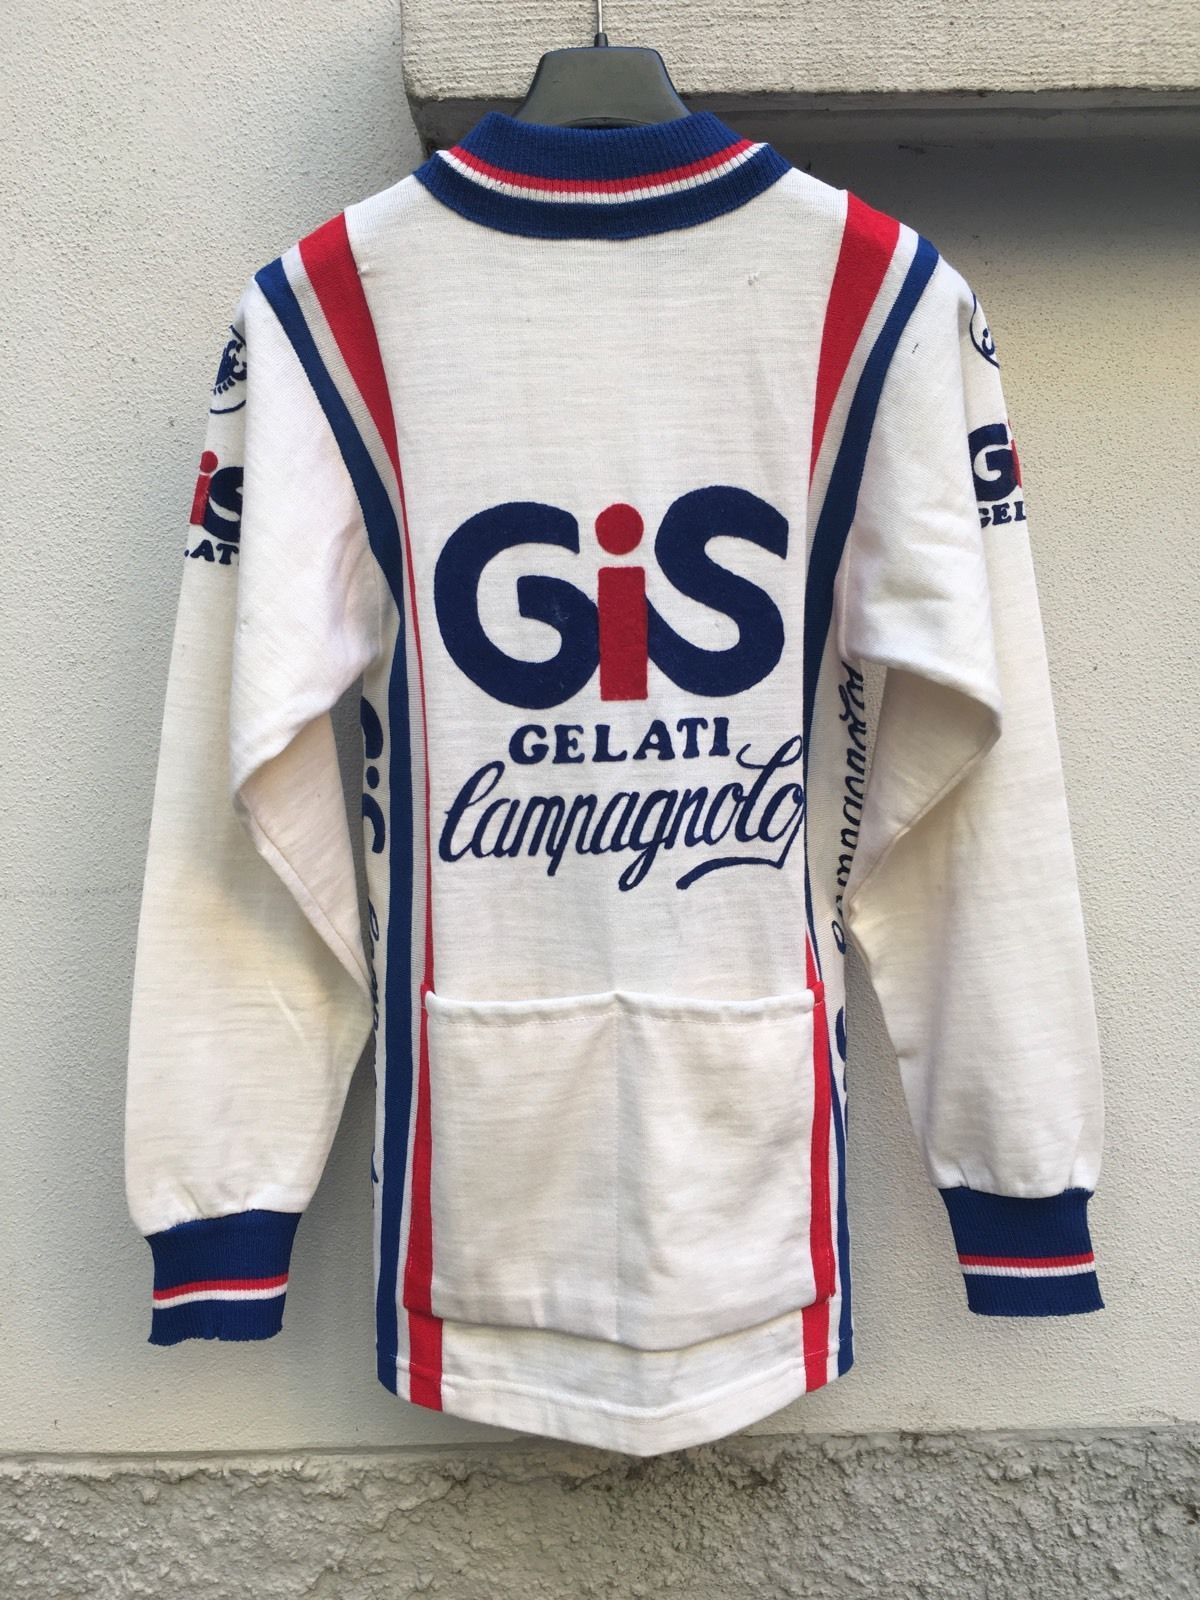 VINTAGE JERSEY CYCLING GELATI GIS COLNAGO CAMPAGNOLO BY CASTELLI PRO ...